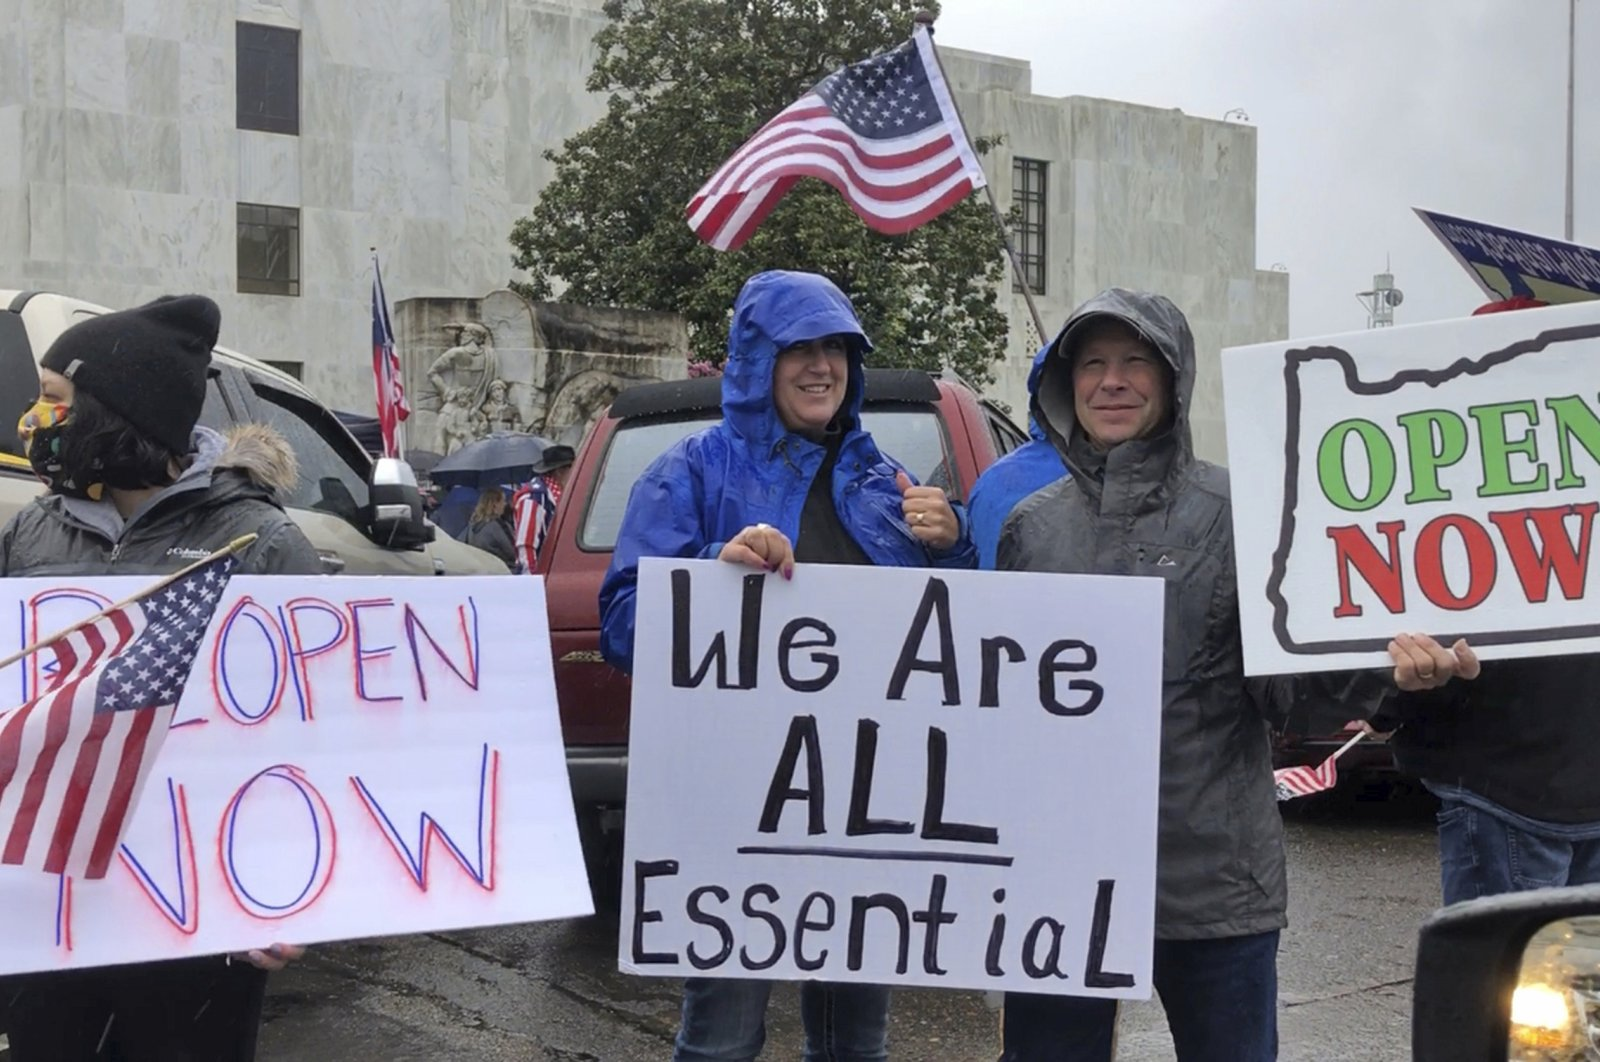 People hold signs protesting Oregon Gov. Kate Brown's executive order that shut down much of the state's economy and imposed social distancing, in her effort to stem the spread of the coronavirus, rally outside the Oregon State Capitol in Salem, Ore., May 2, 2020. (AP Photo)